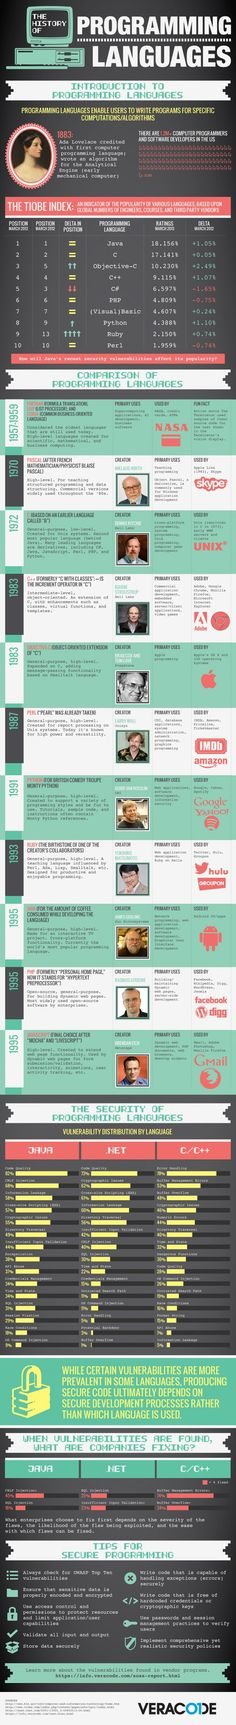 Great InfoGraphics on Programming Languages - Codeplaza